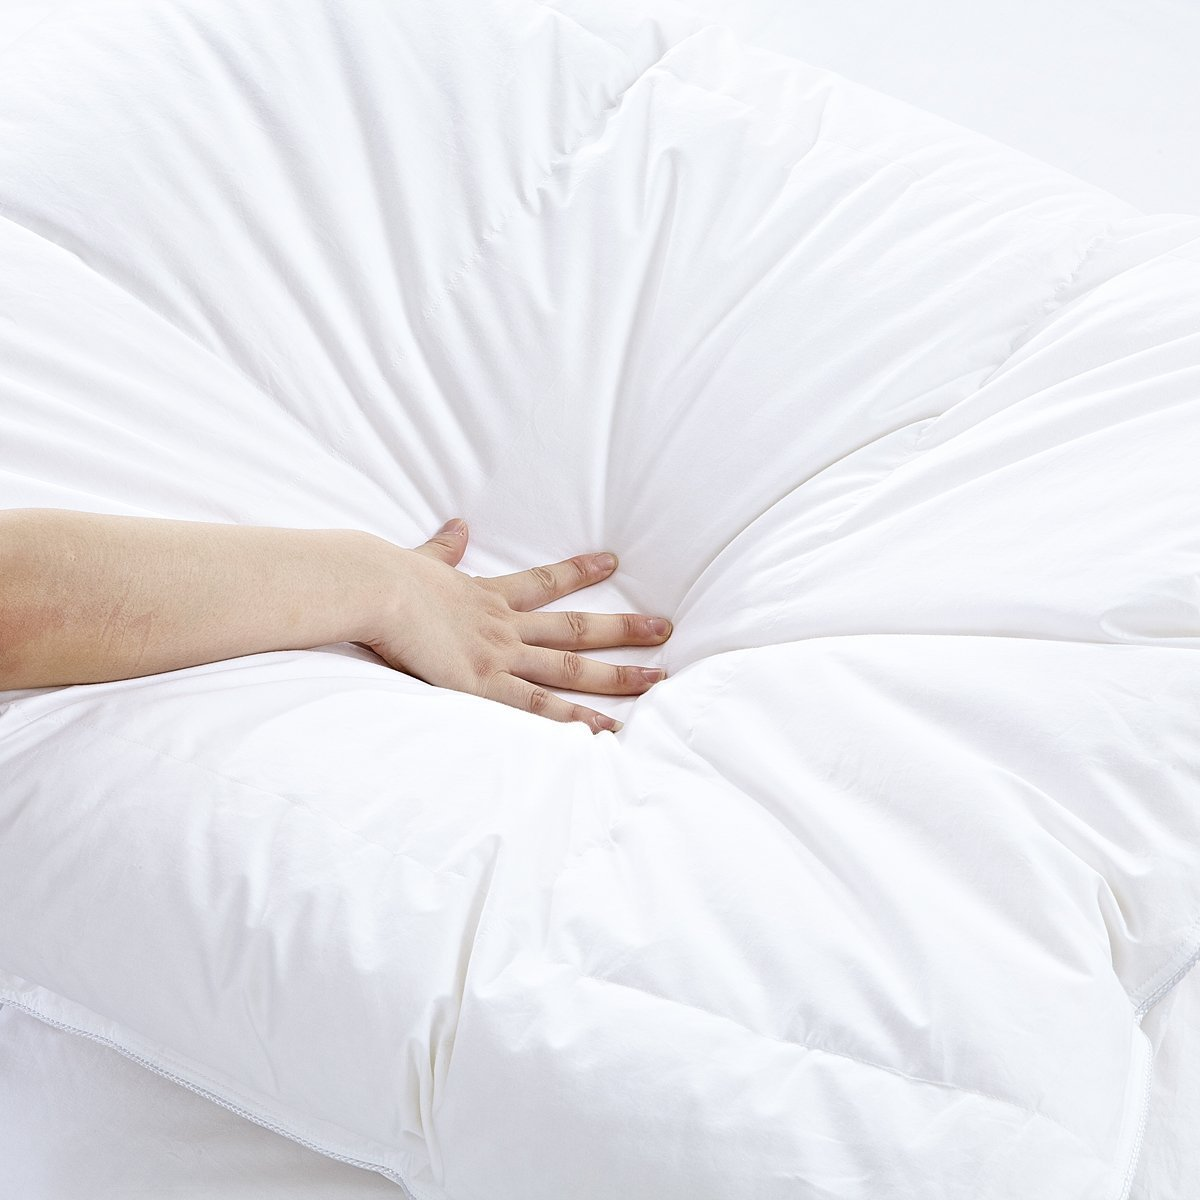 White Goose Down Comforters King/Cal King Size 600 Thread Count 100% Cotton 700 + Fill Power Shell Down Proof-Solid White Hypo-allergenic with Corner Tabs by SHEONE (Image #4)